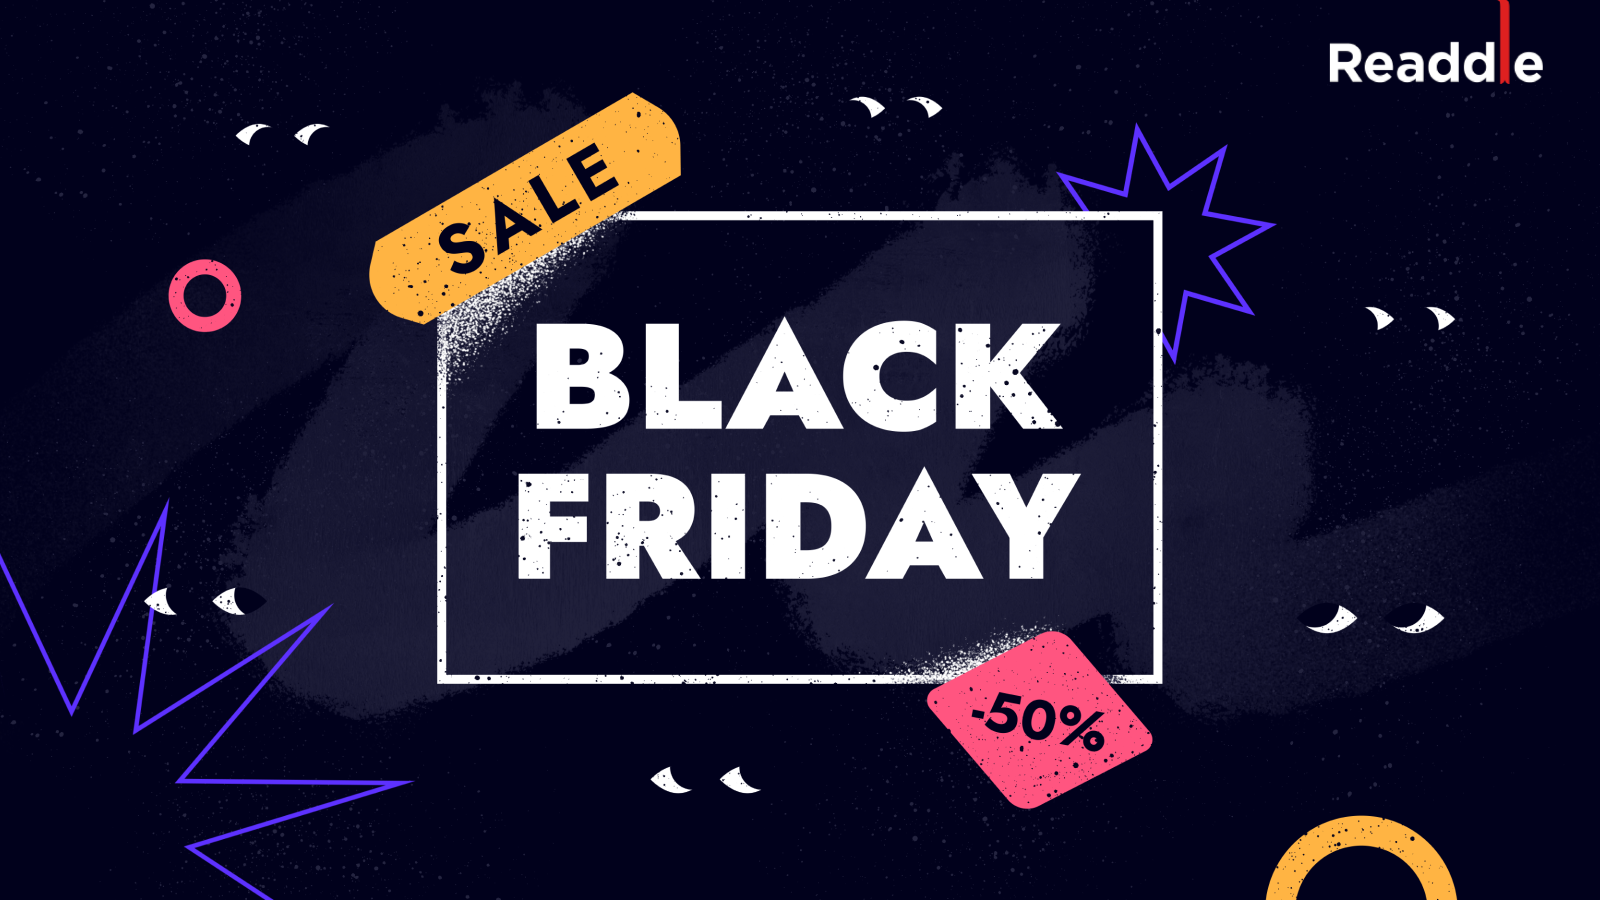 Black Friday 2019 Get Readdle S Apps With Up To 50 Off